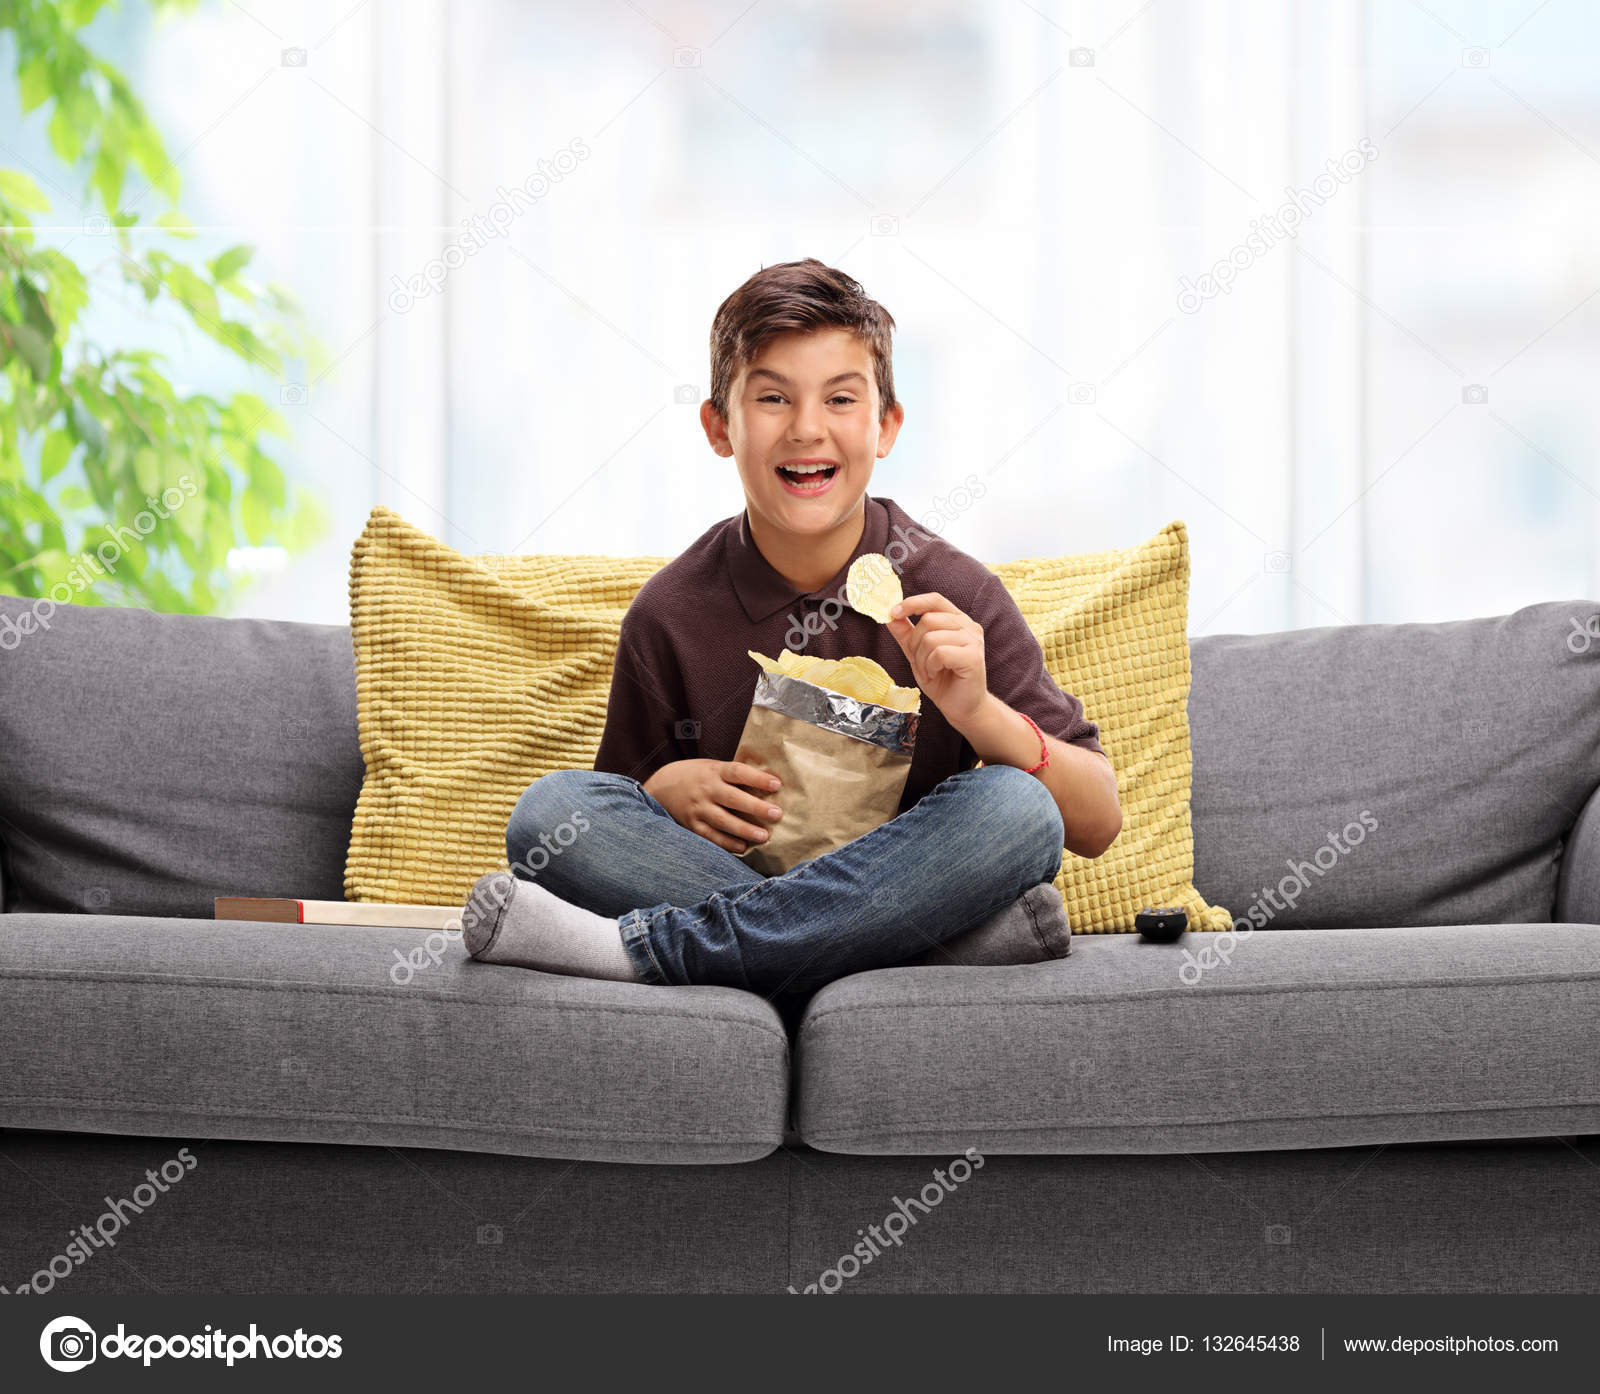 Boy Sitting On A Sofa And Eating Potato Chips Stock Photo